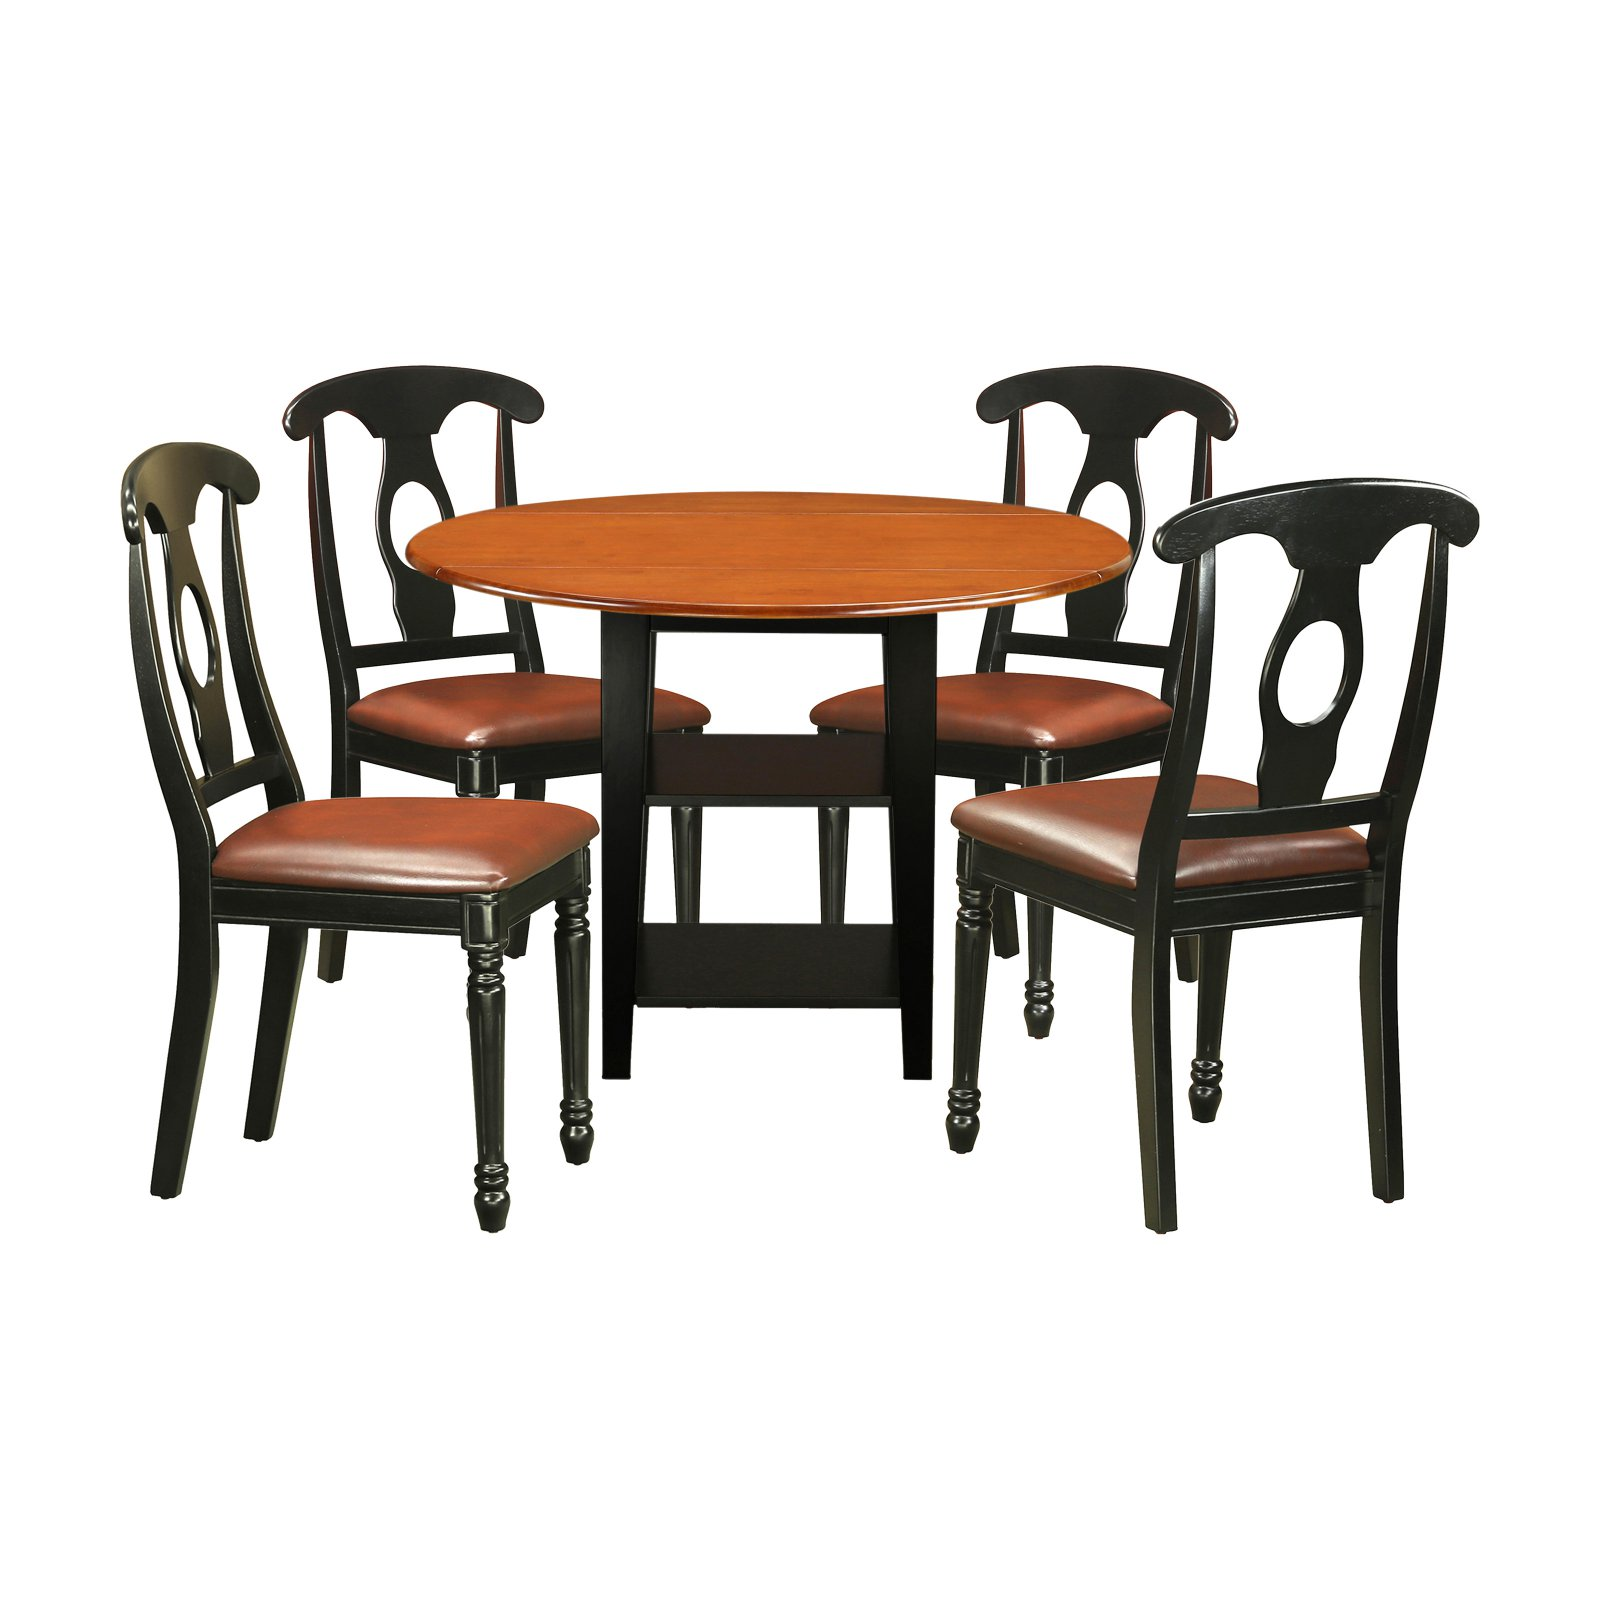 East West Furniture Sudbury 5 Piece Dual Drop Leaf Dining Table Set with Keyhole Chairs